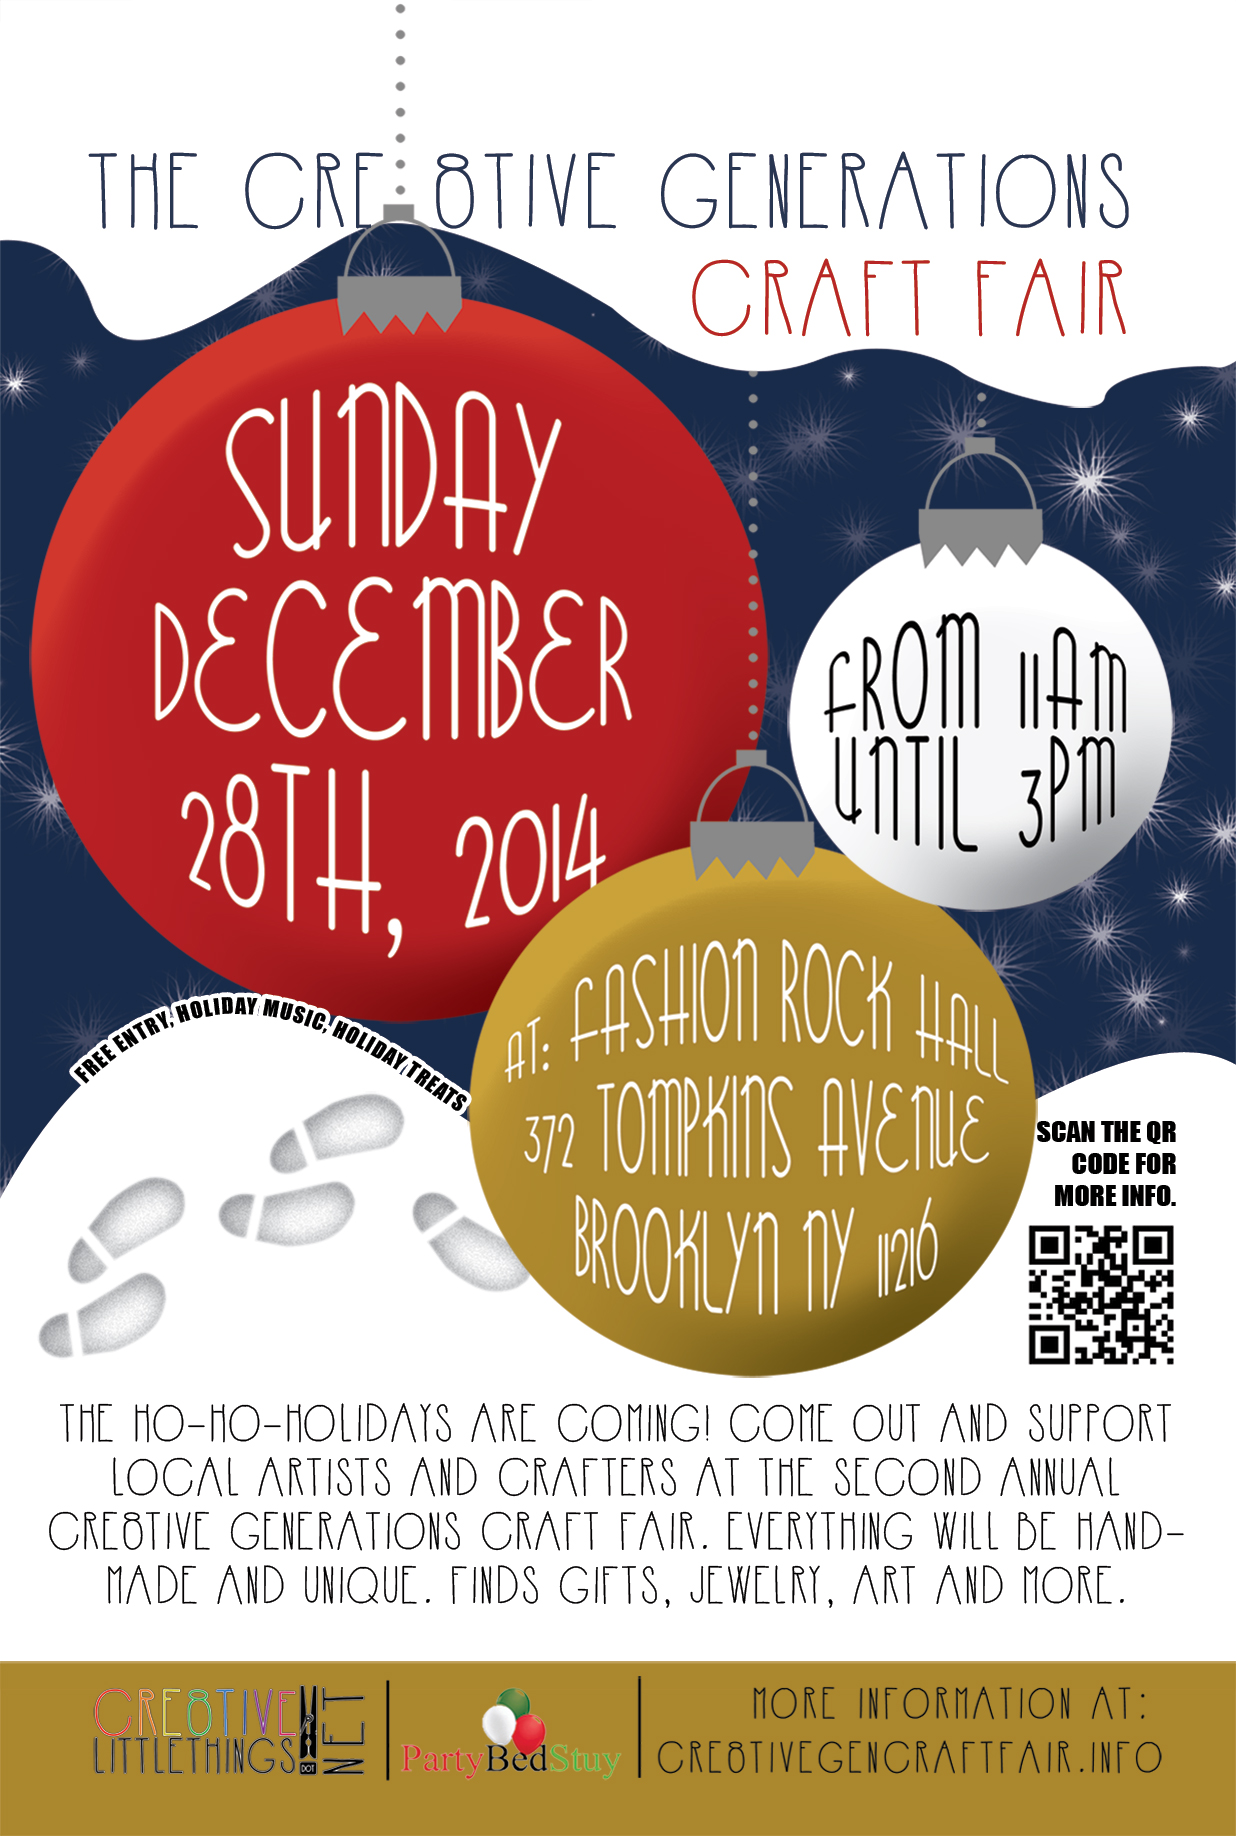 Cre8tive Generations Craft Fair Flyer